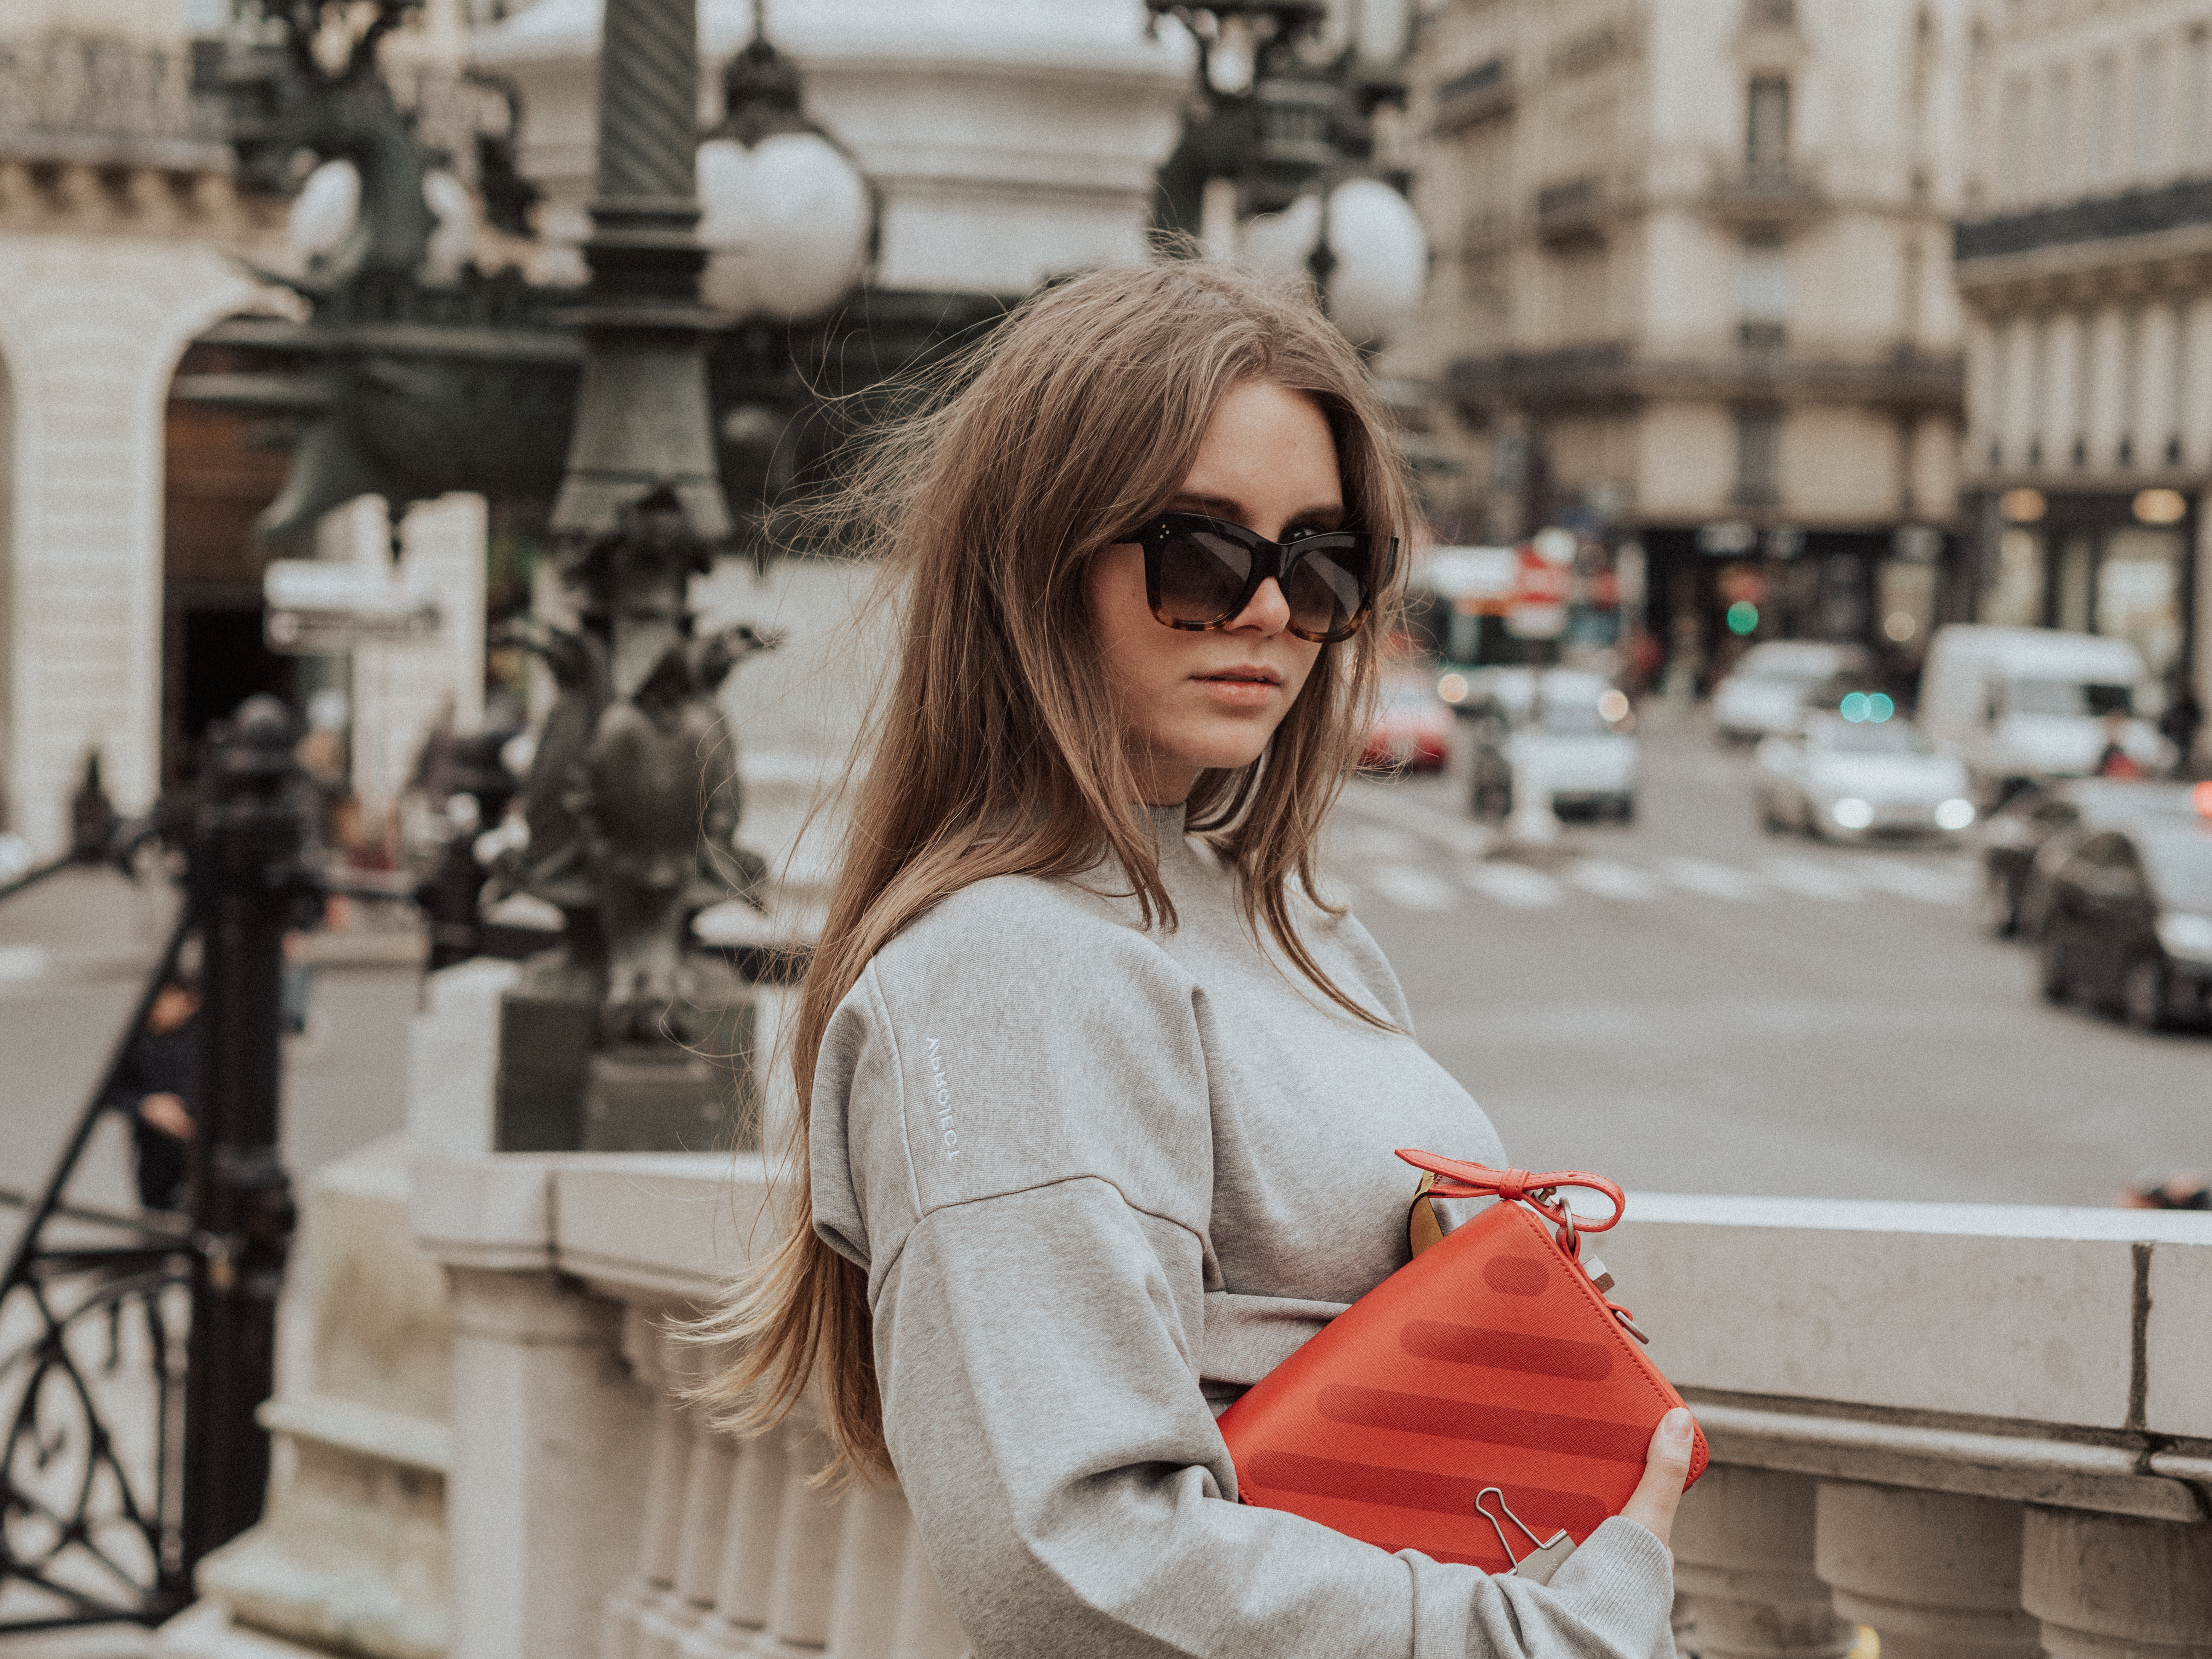 Fashion blogger Dominique Candido at PFW wearing Y Project, off white and Celine sunglasses